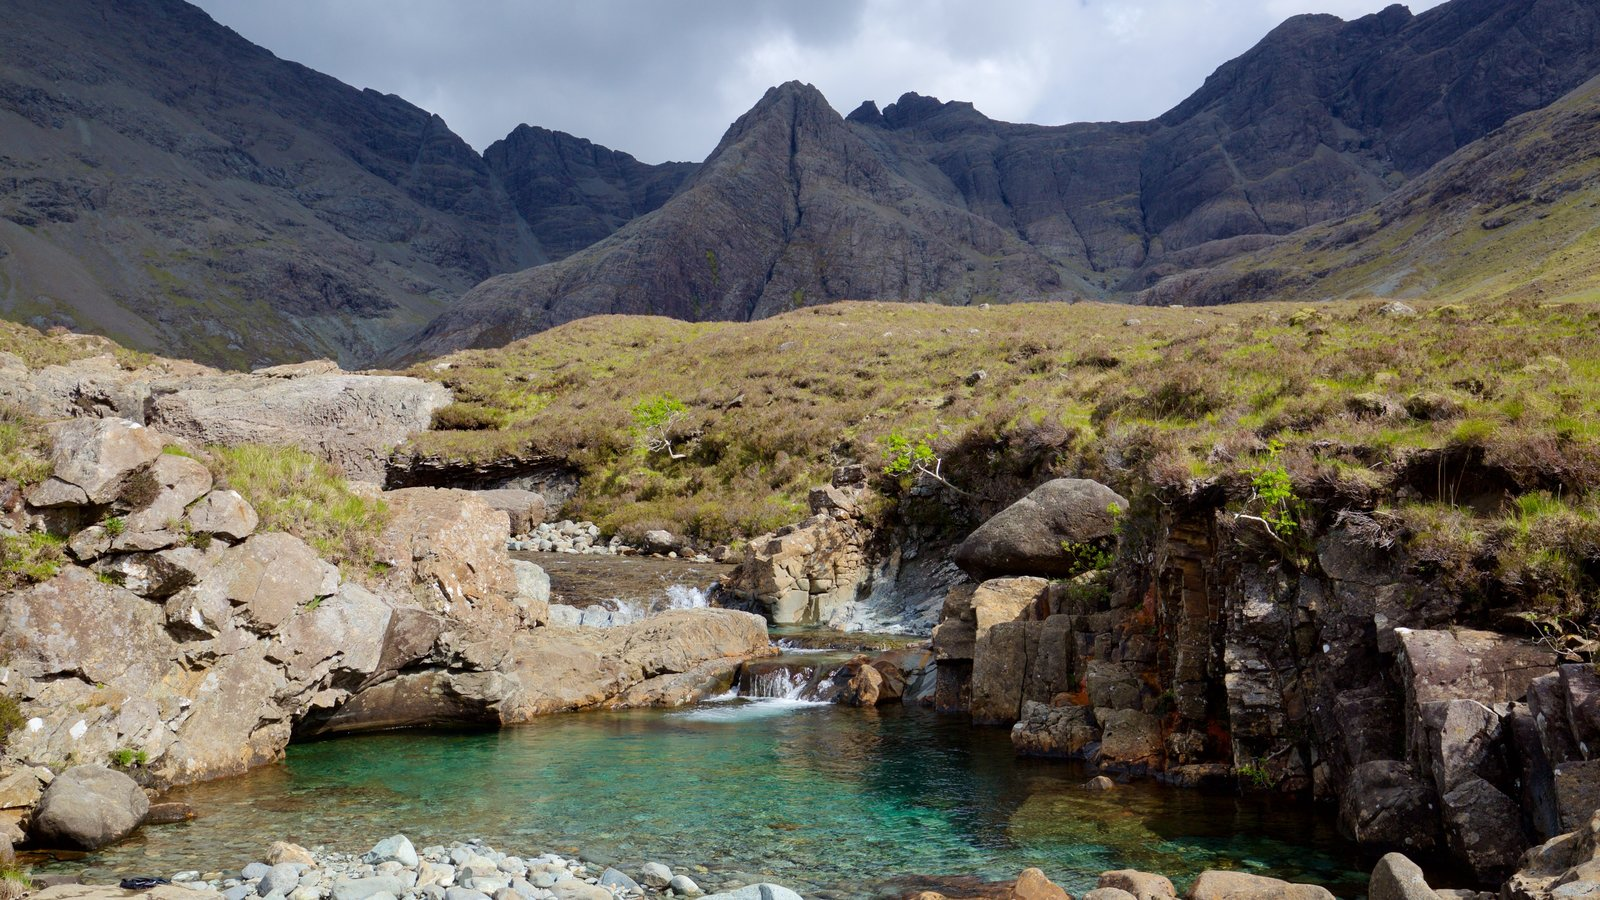 Isle of Skye which includes a river or creek, a pond and tranquil scenes